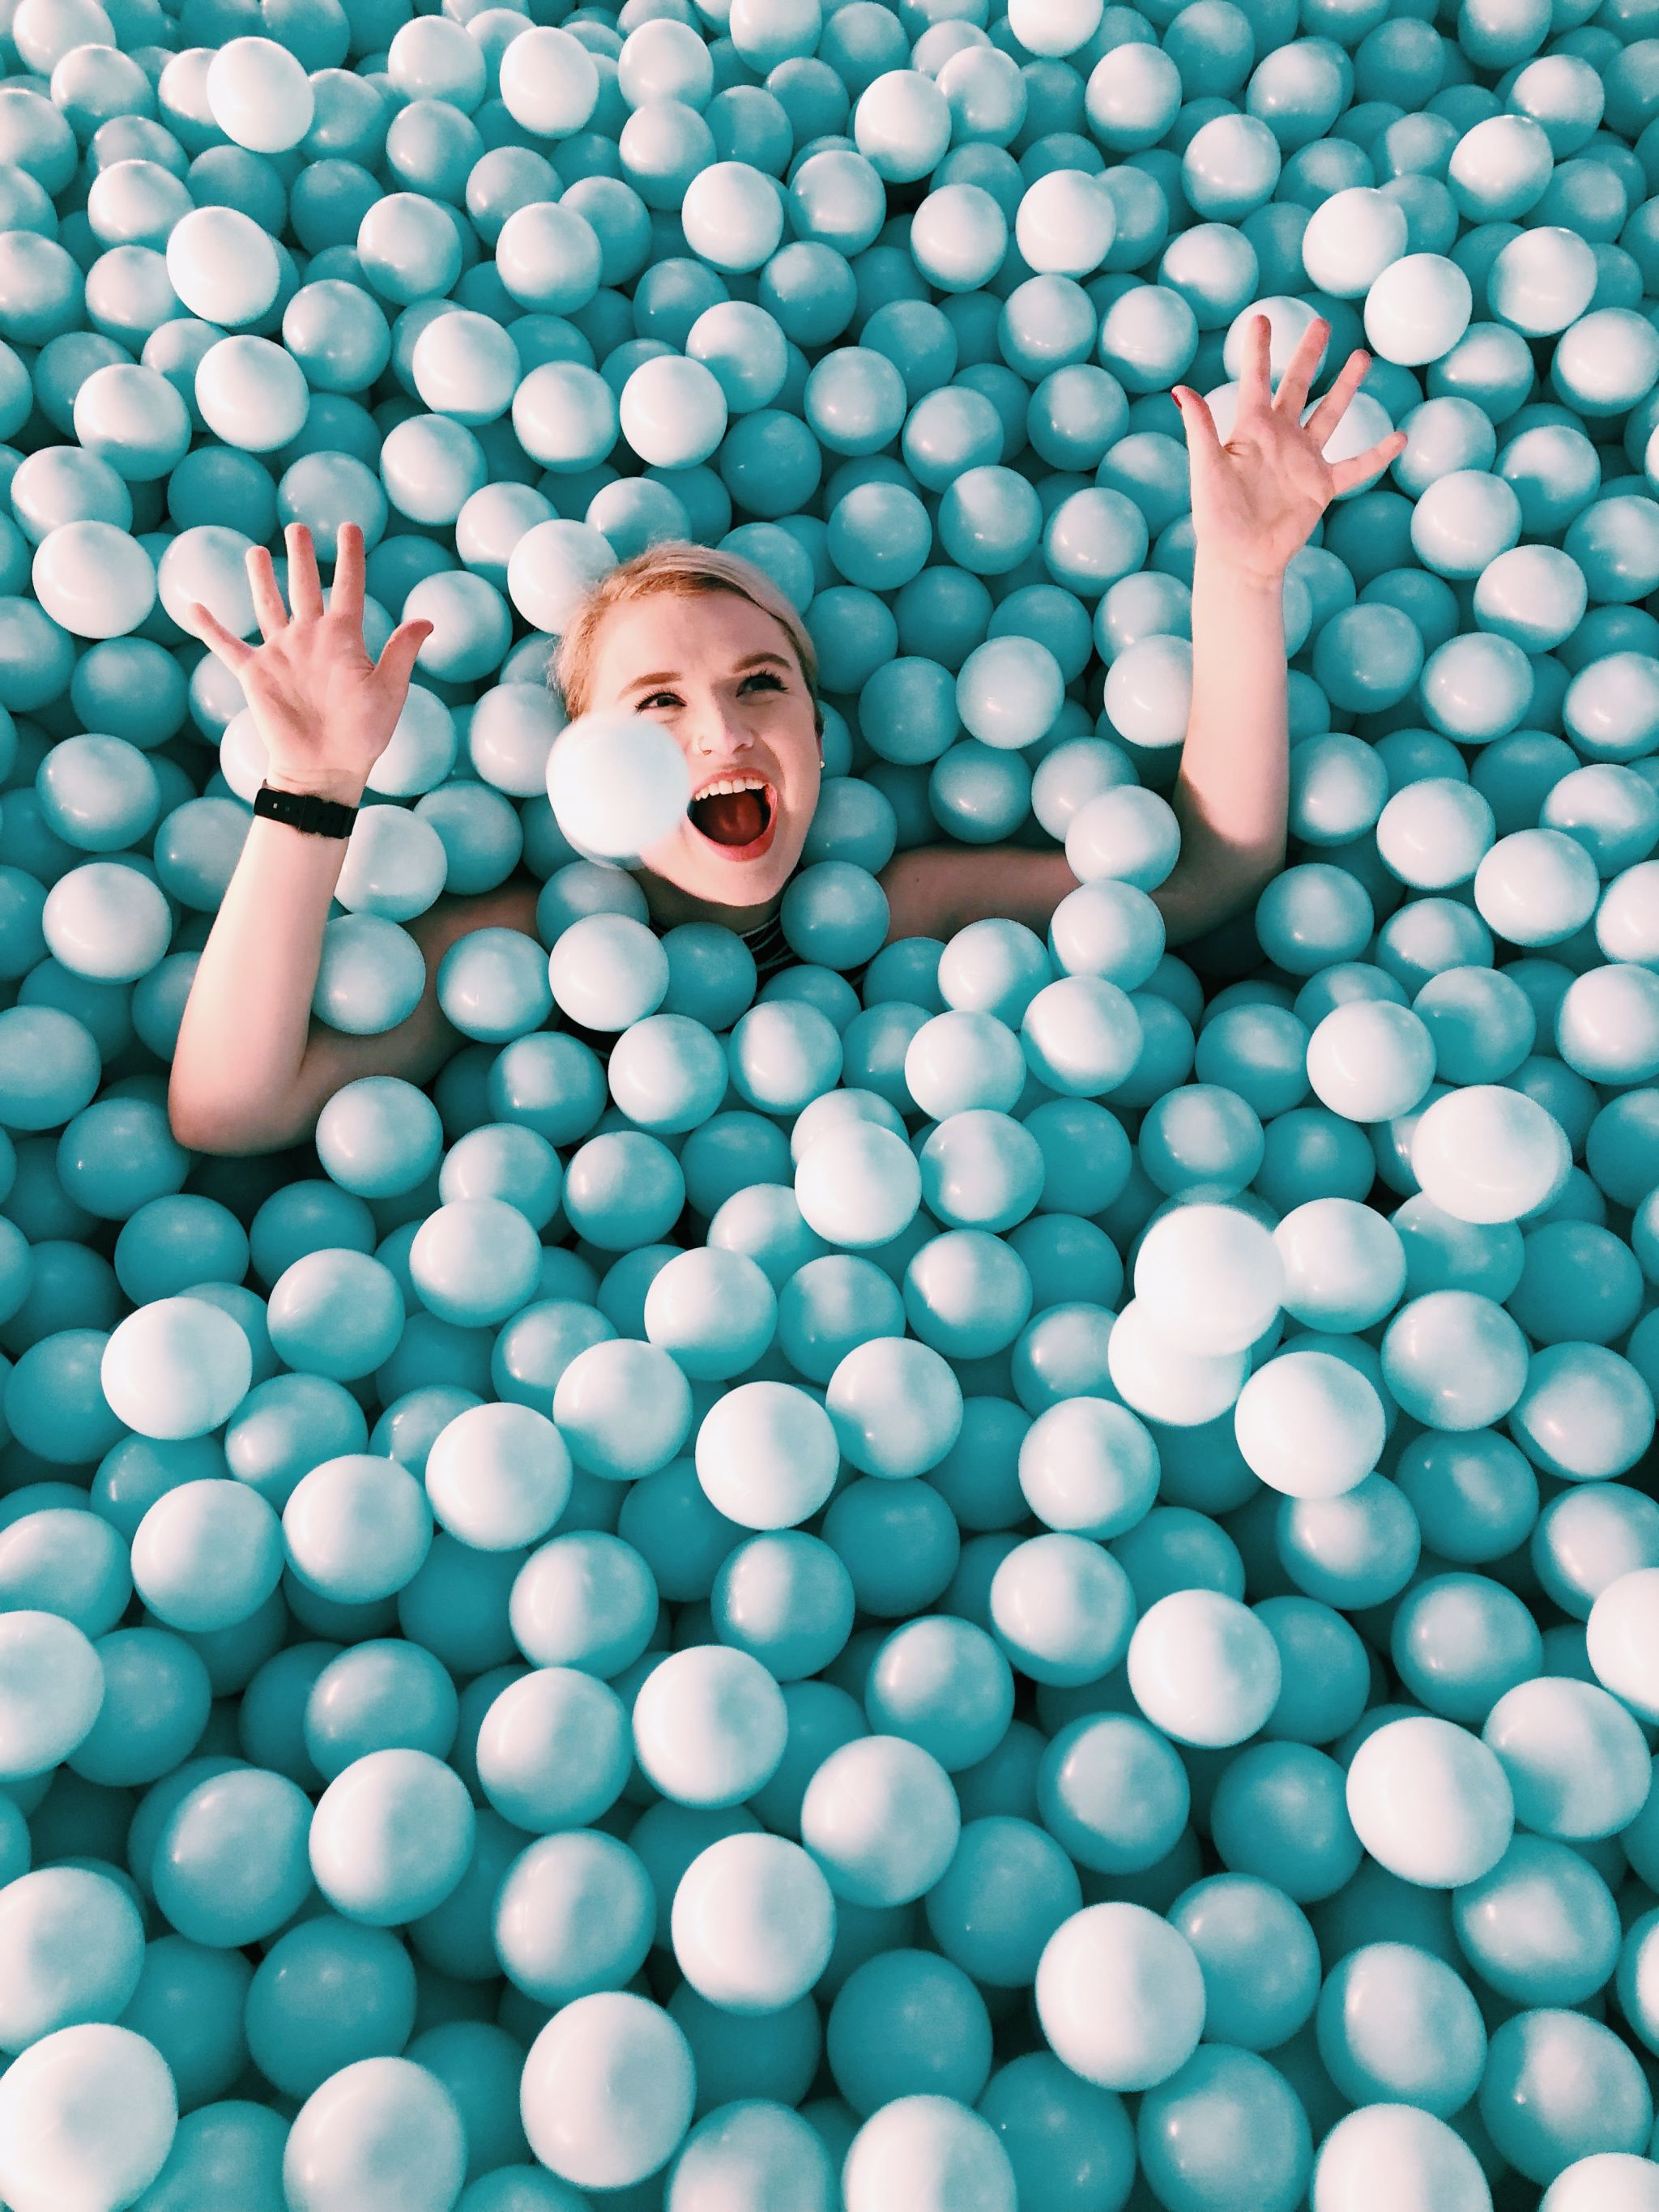 Most Instagrammable Spots in SoHo - the color factory blue ball pit